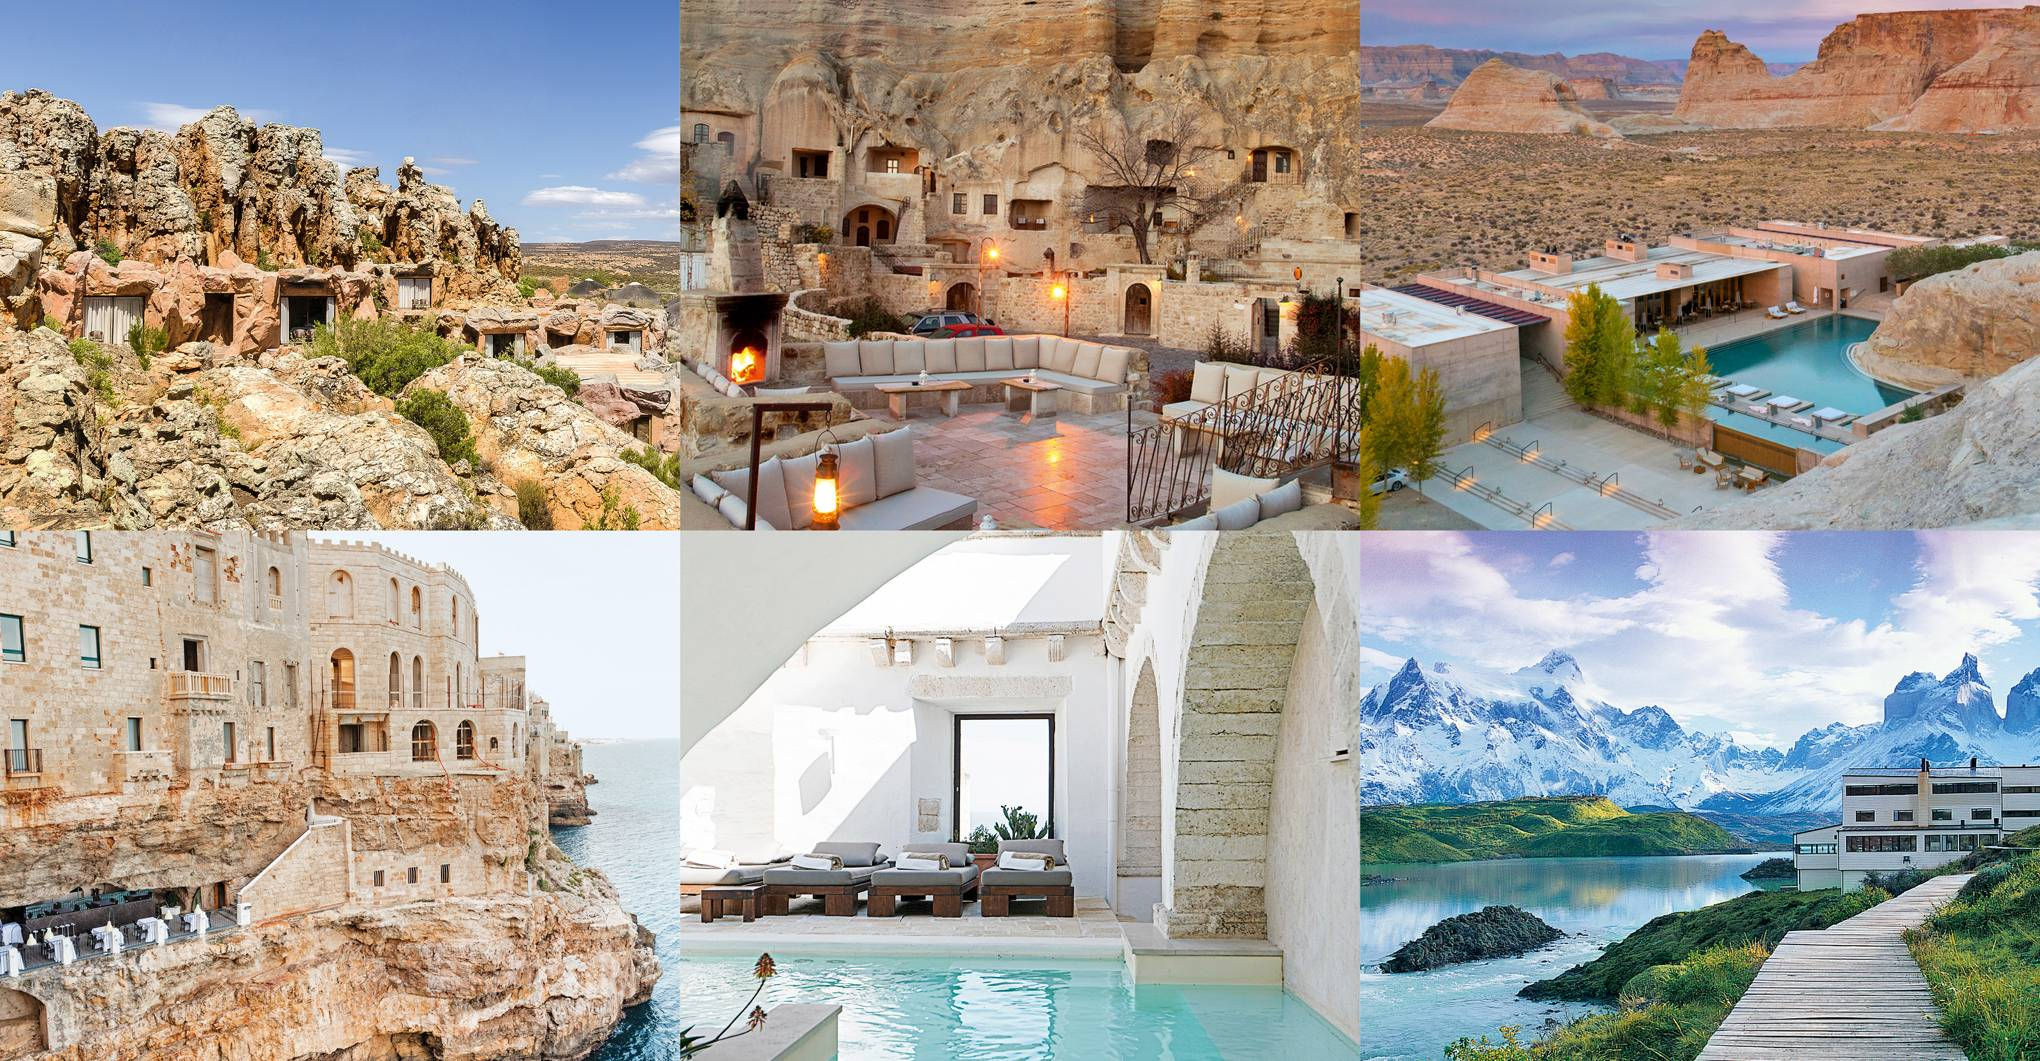 15 caves you can actually stay in